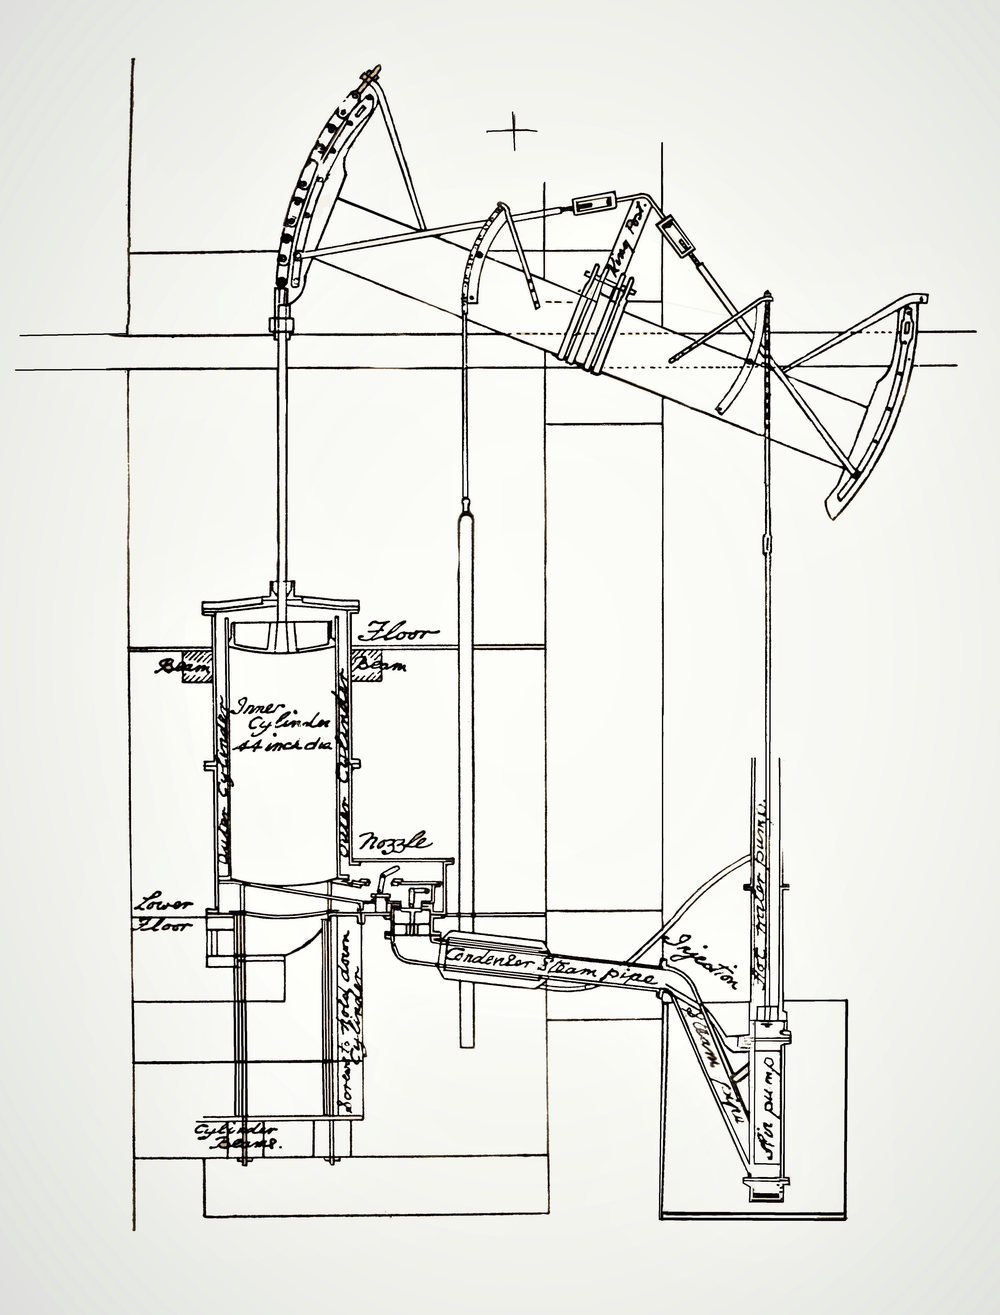 Drawing of an early Watt beam engine by Keith Hodgkins